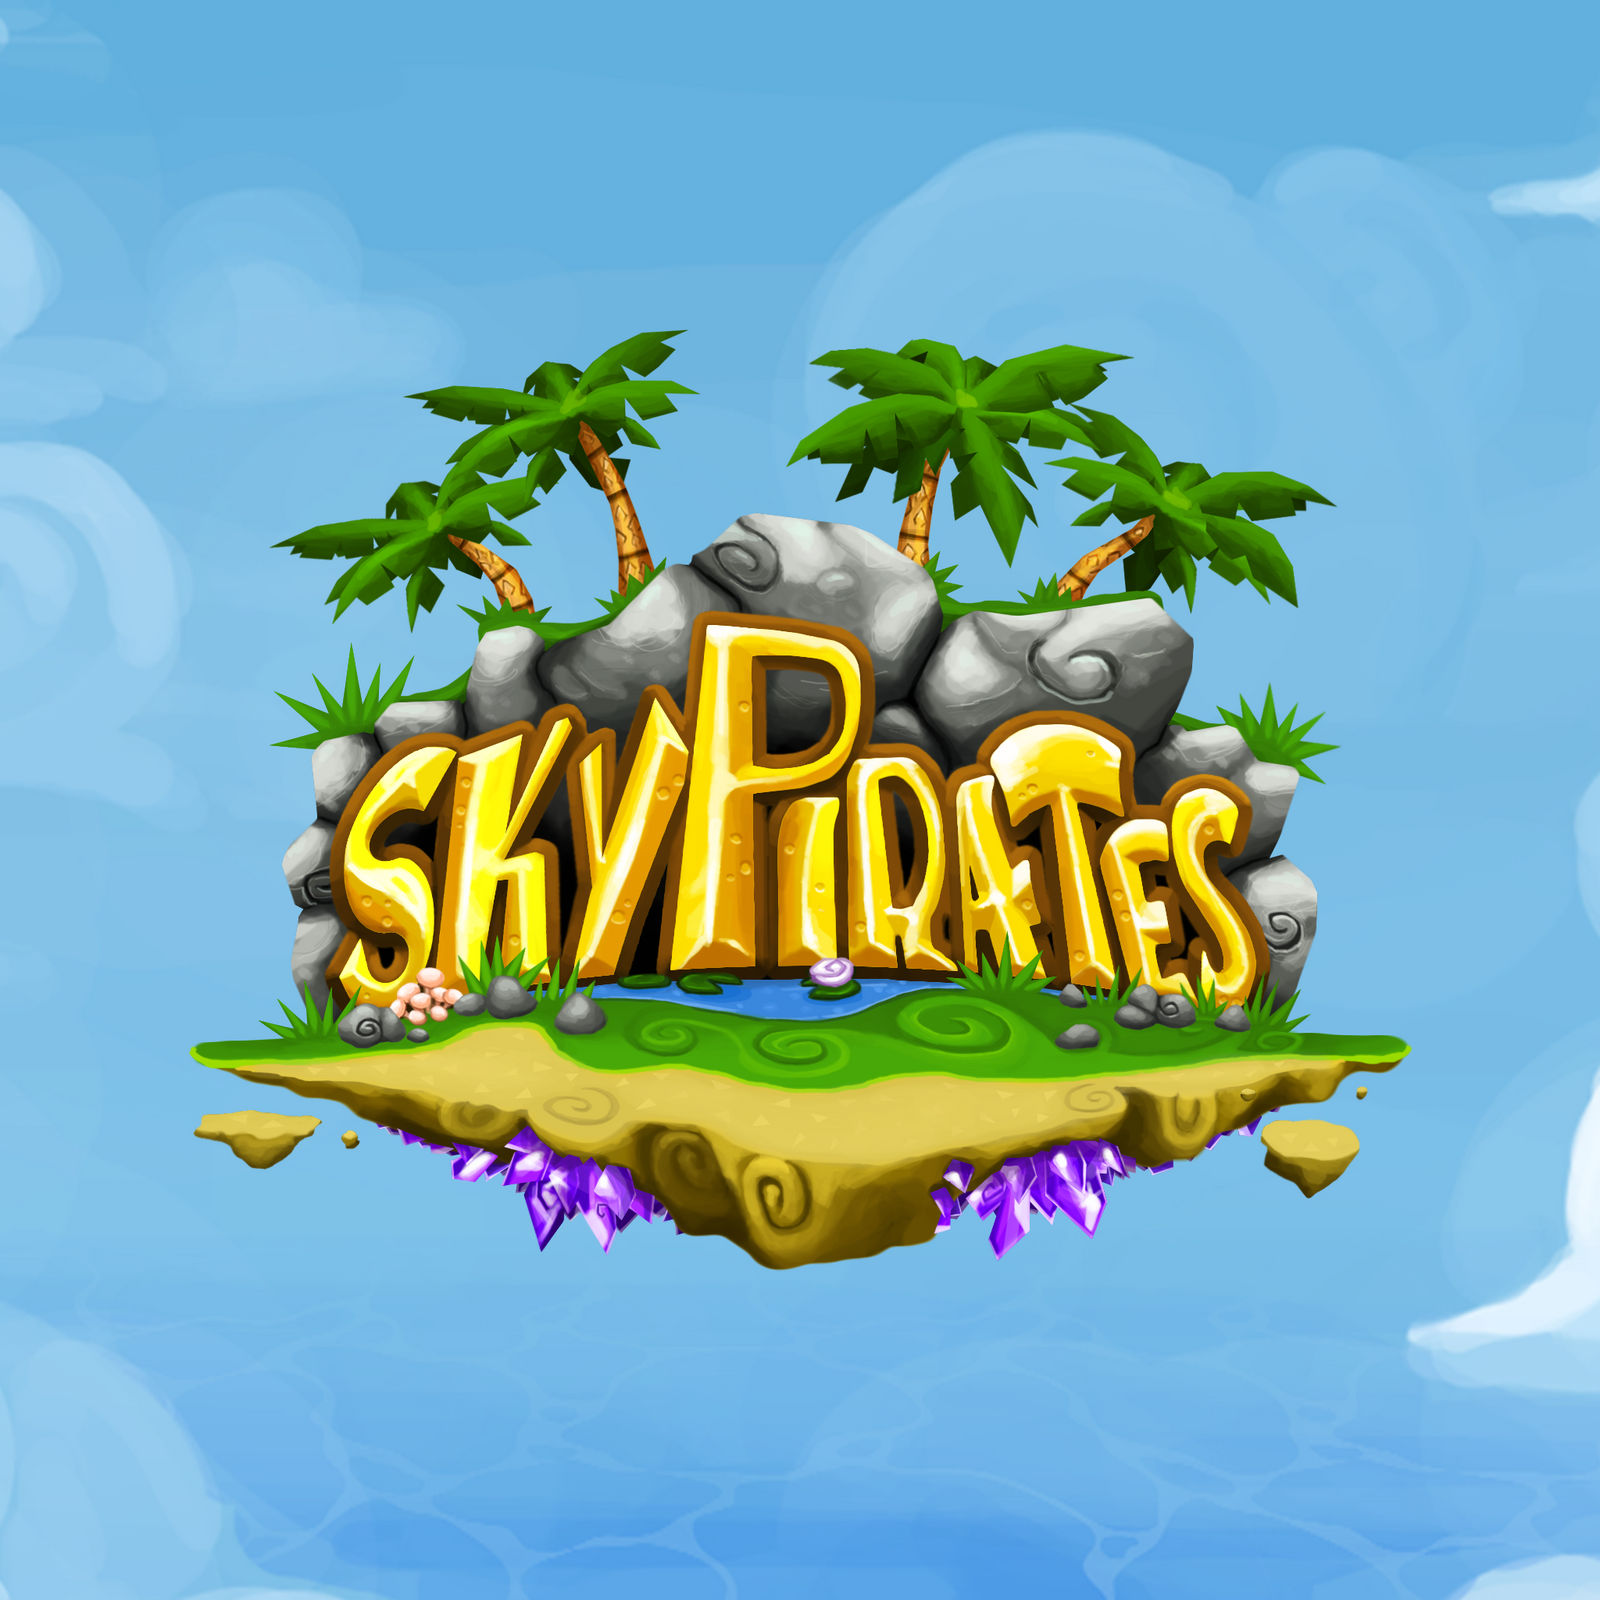 Sky Pirates Logo